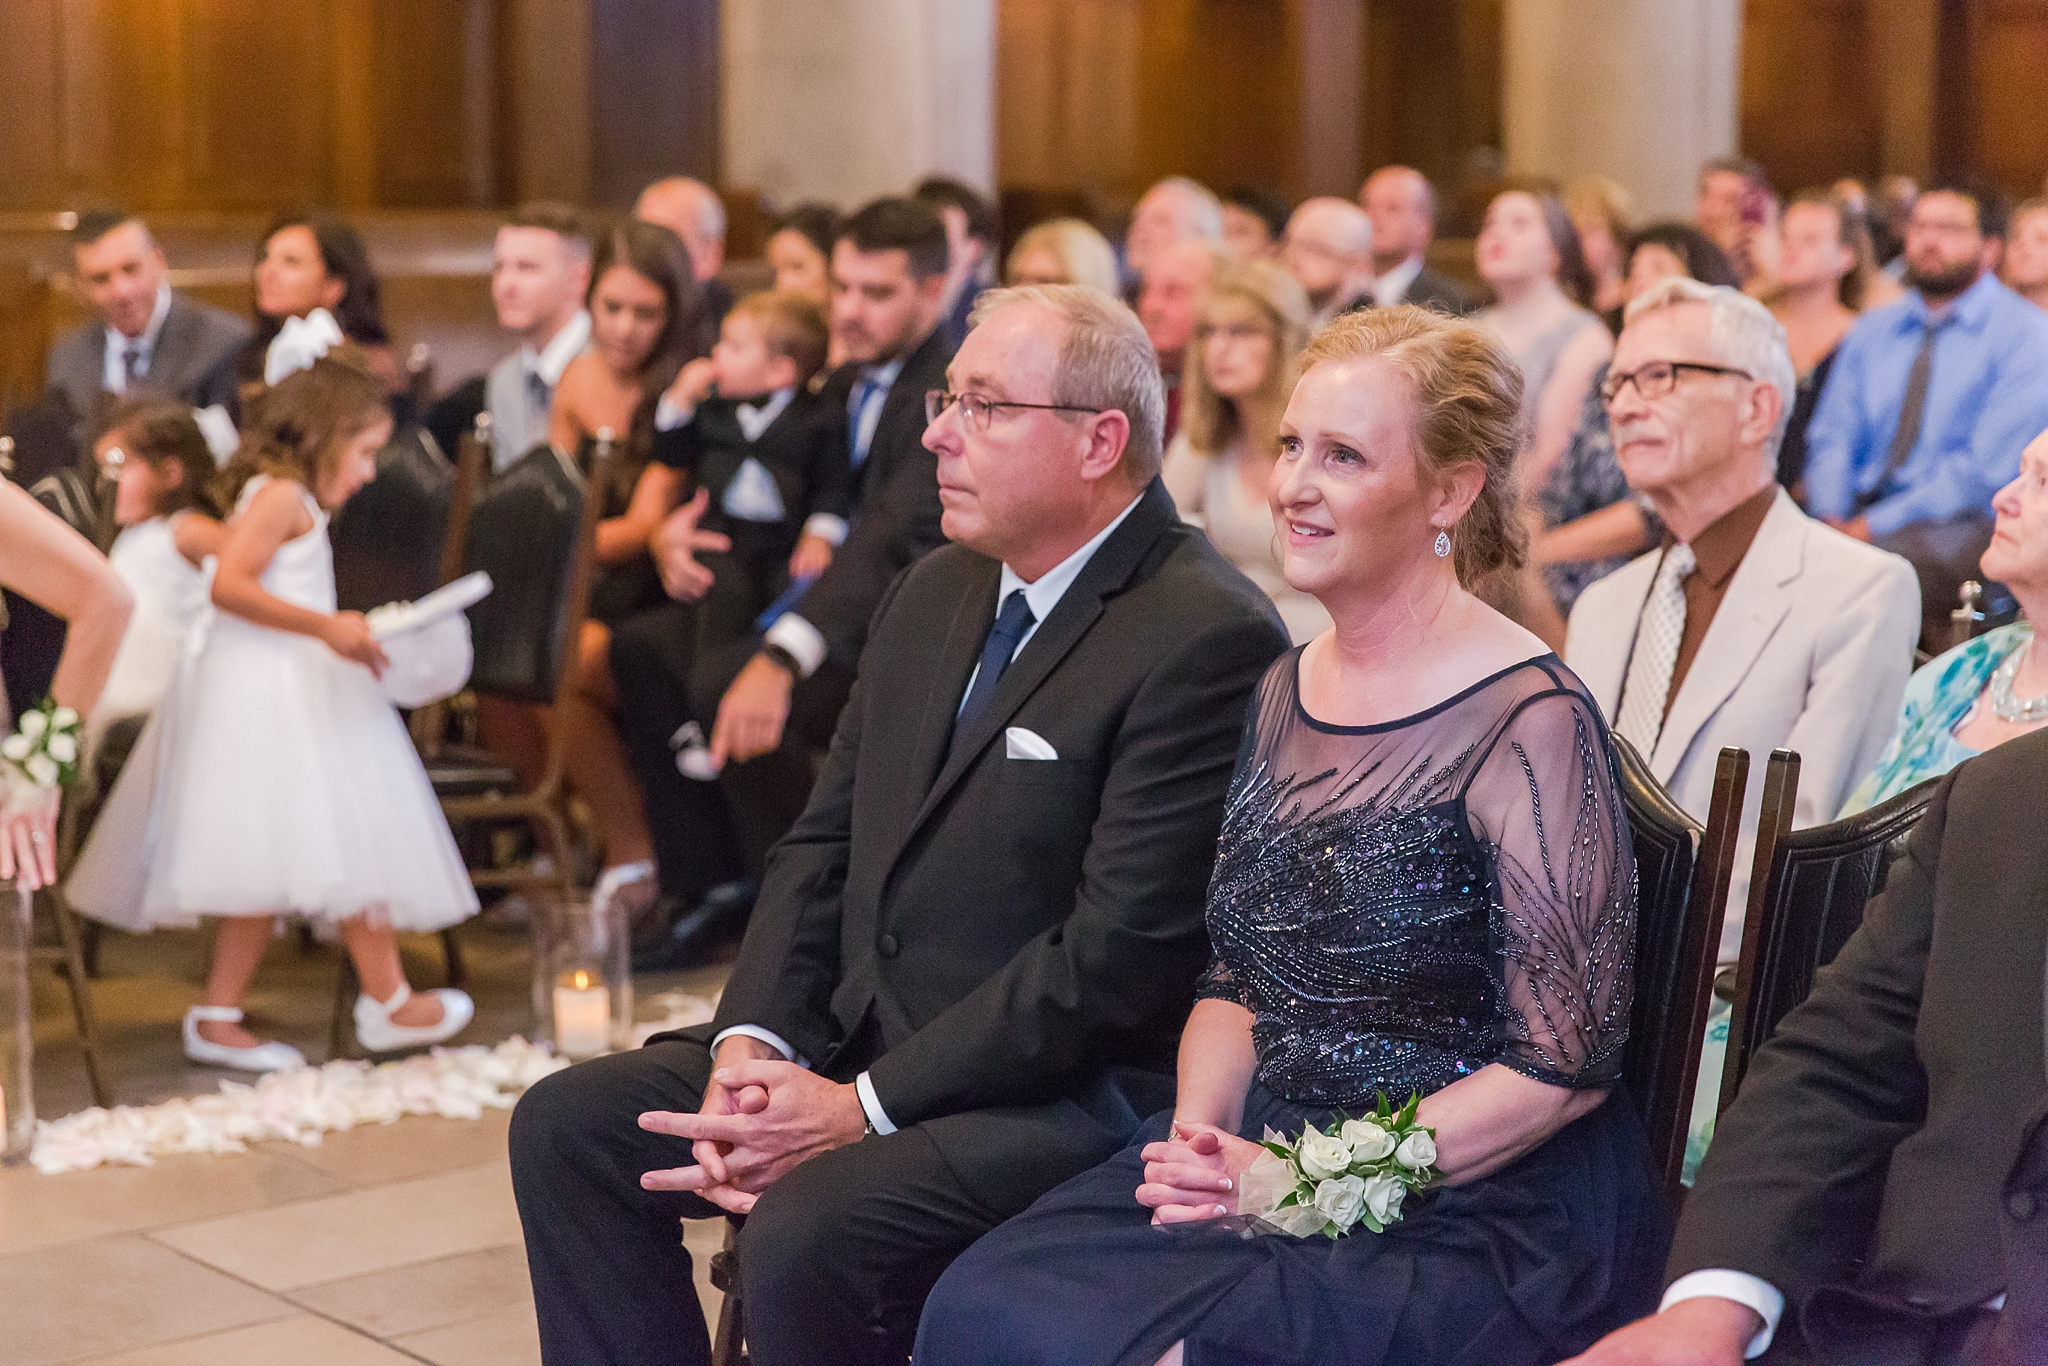 candid-romantic-wedding-photos-at-the-masonic-temple-belle-isle-detroit-institute-of-arts-in-detroit-michigan-by-courtney-carolyn-photography_0078.jpg